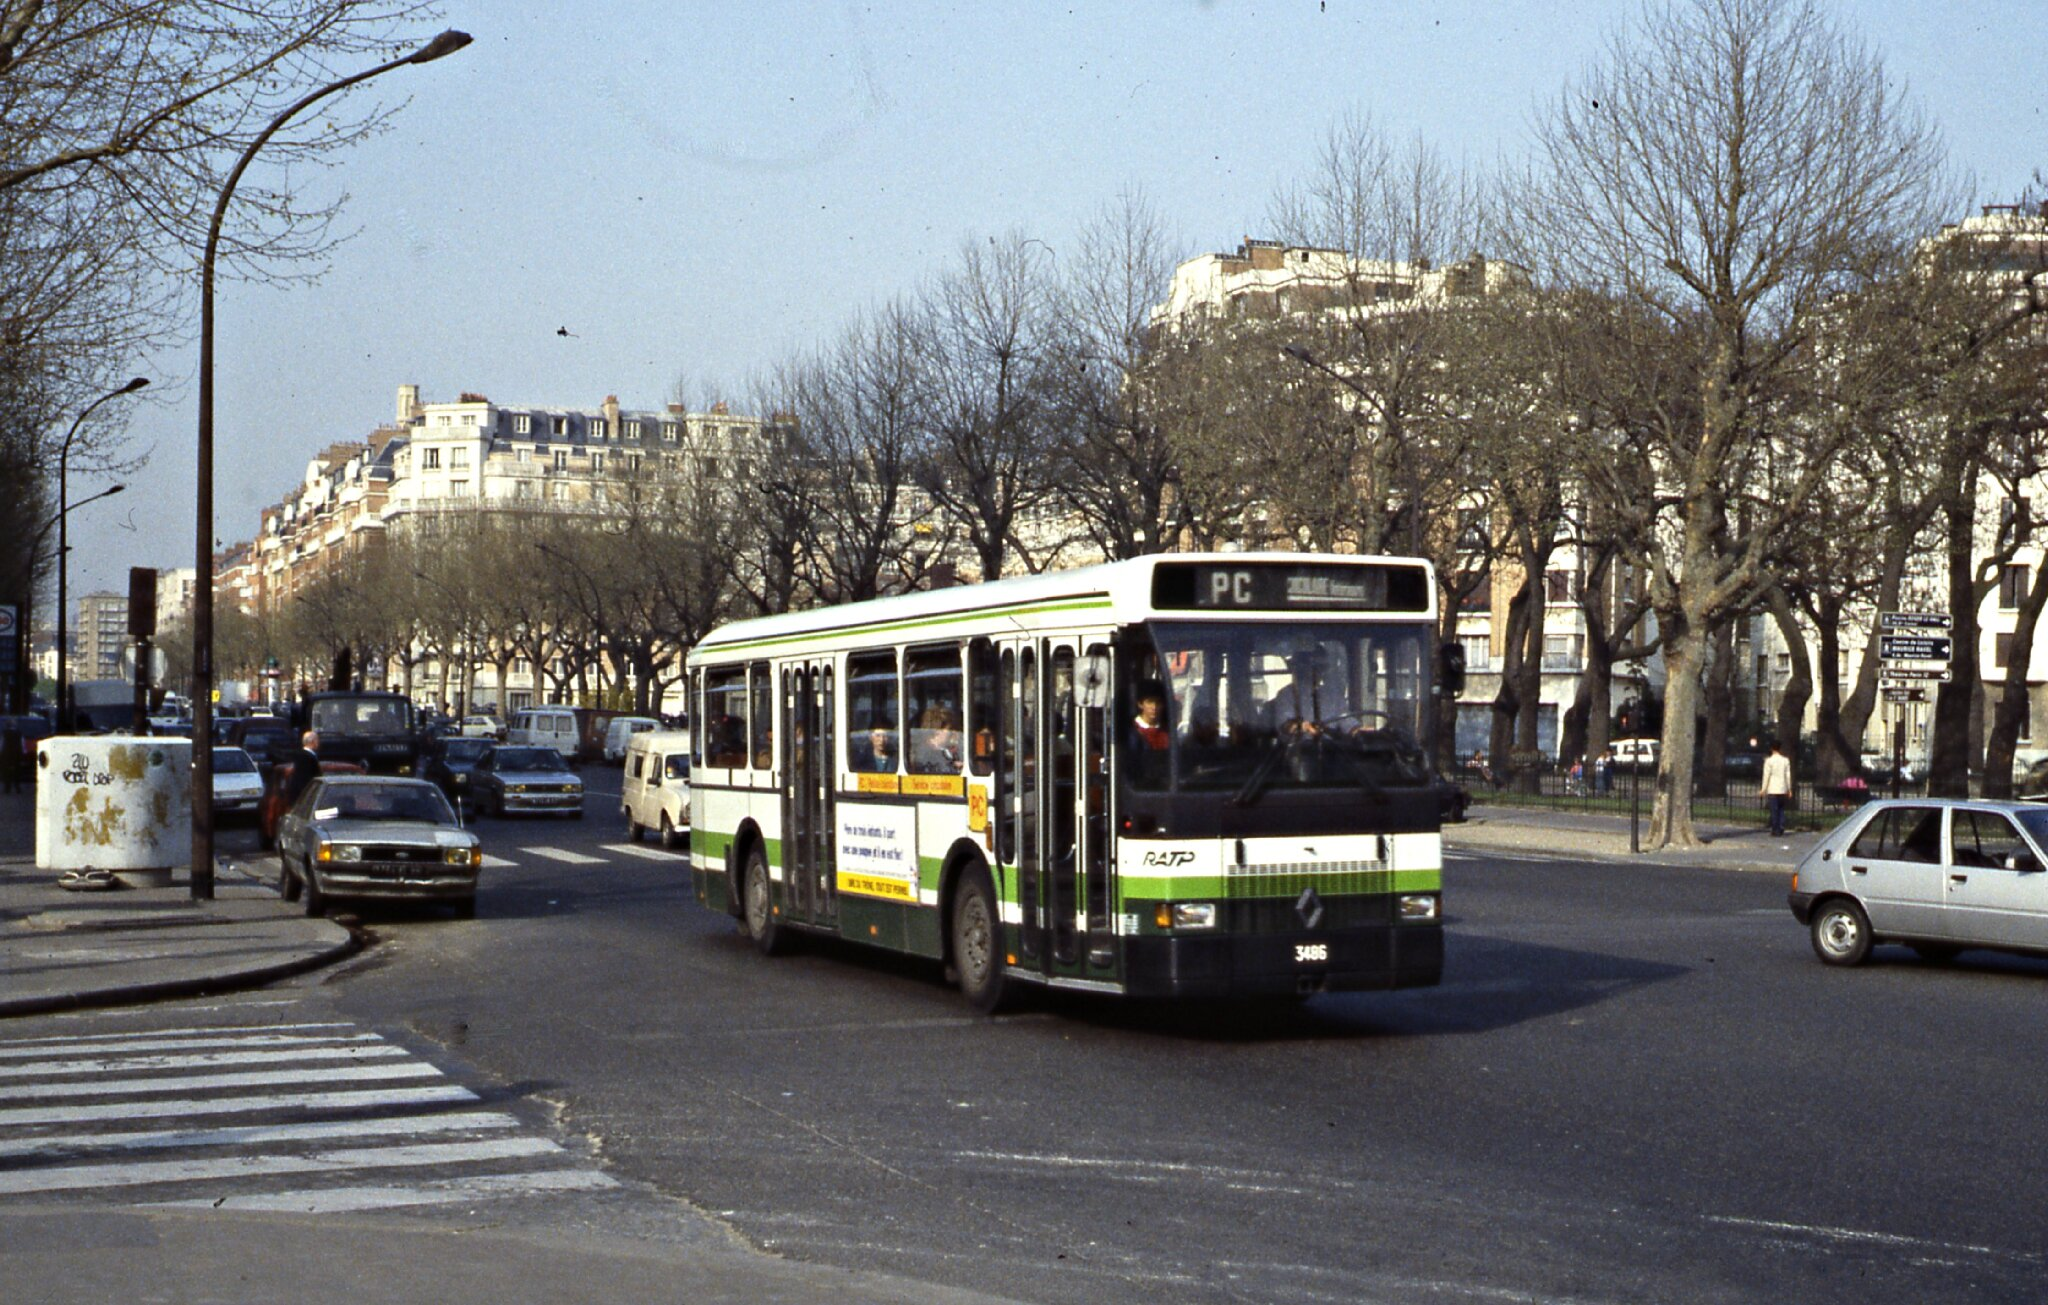 t3 le tramway des mar chaux transportparis le webmagazine des transports parisiens. Black Bedroom Furniture Sets. Home Design Ideas